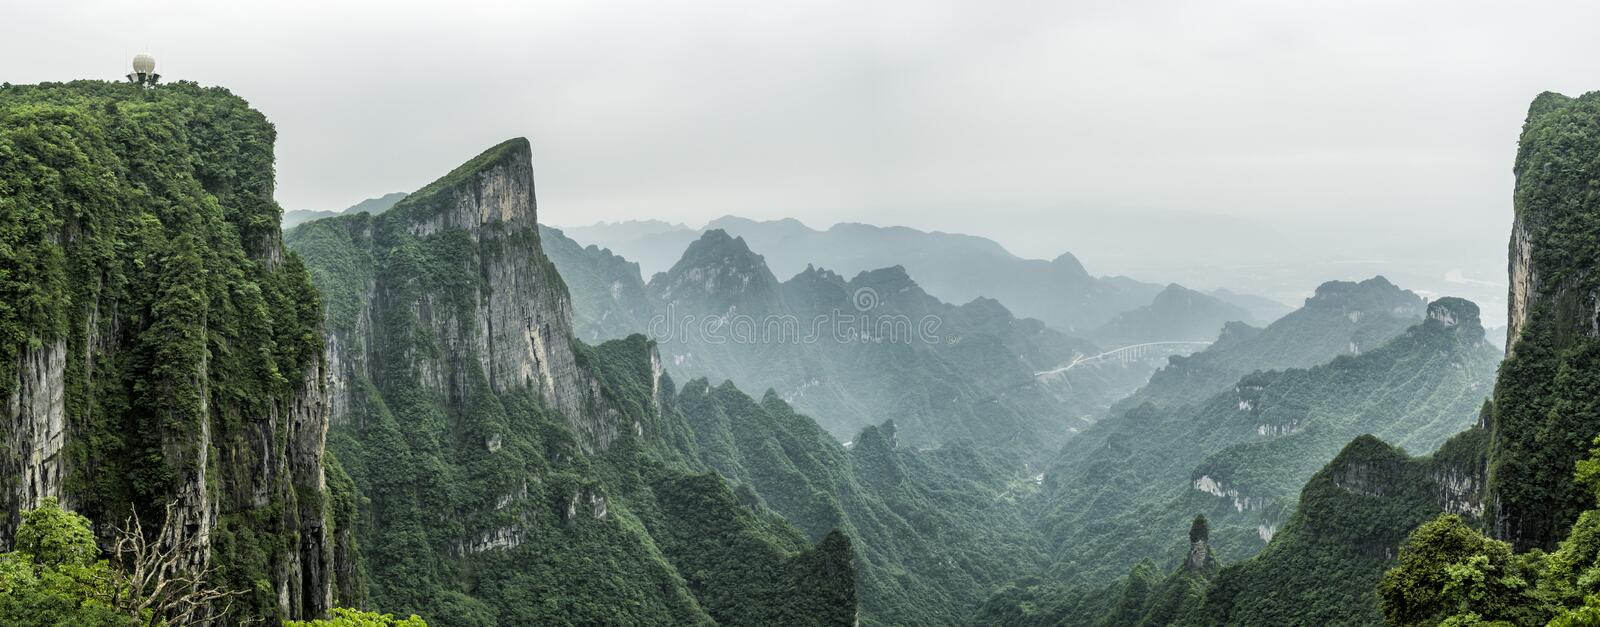 Tianmen Mountain Known as The Heaven`s Gate surrounded by the green forest and mist at Zhangjiagie, Hunan Province, China, Asia.  royalty free stock photo